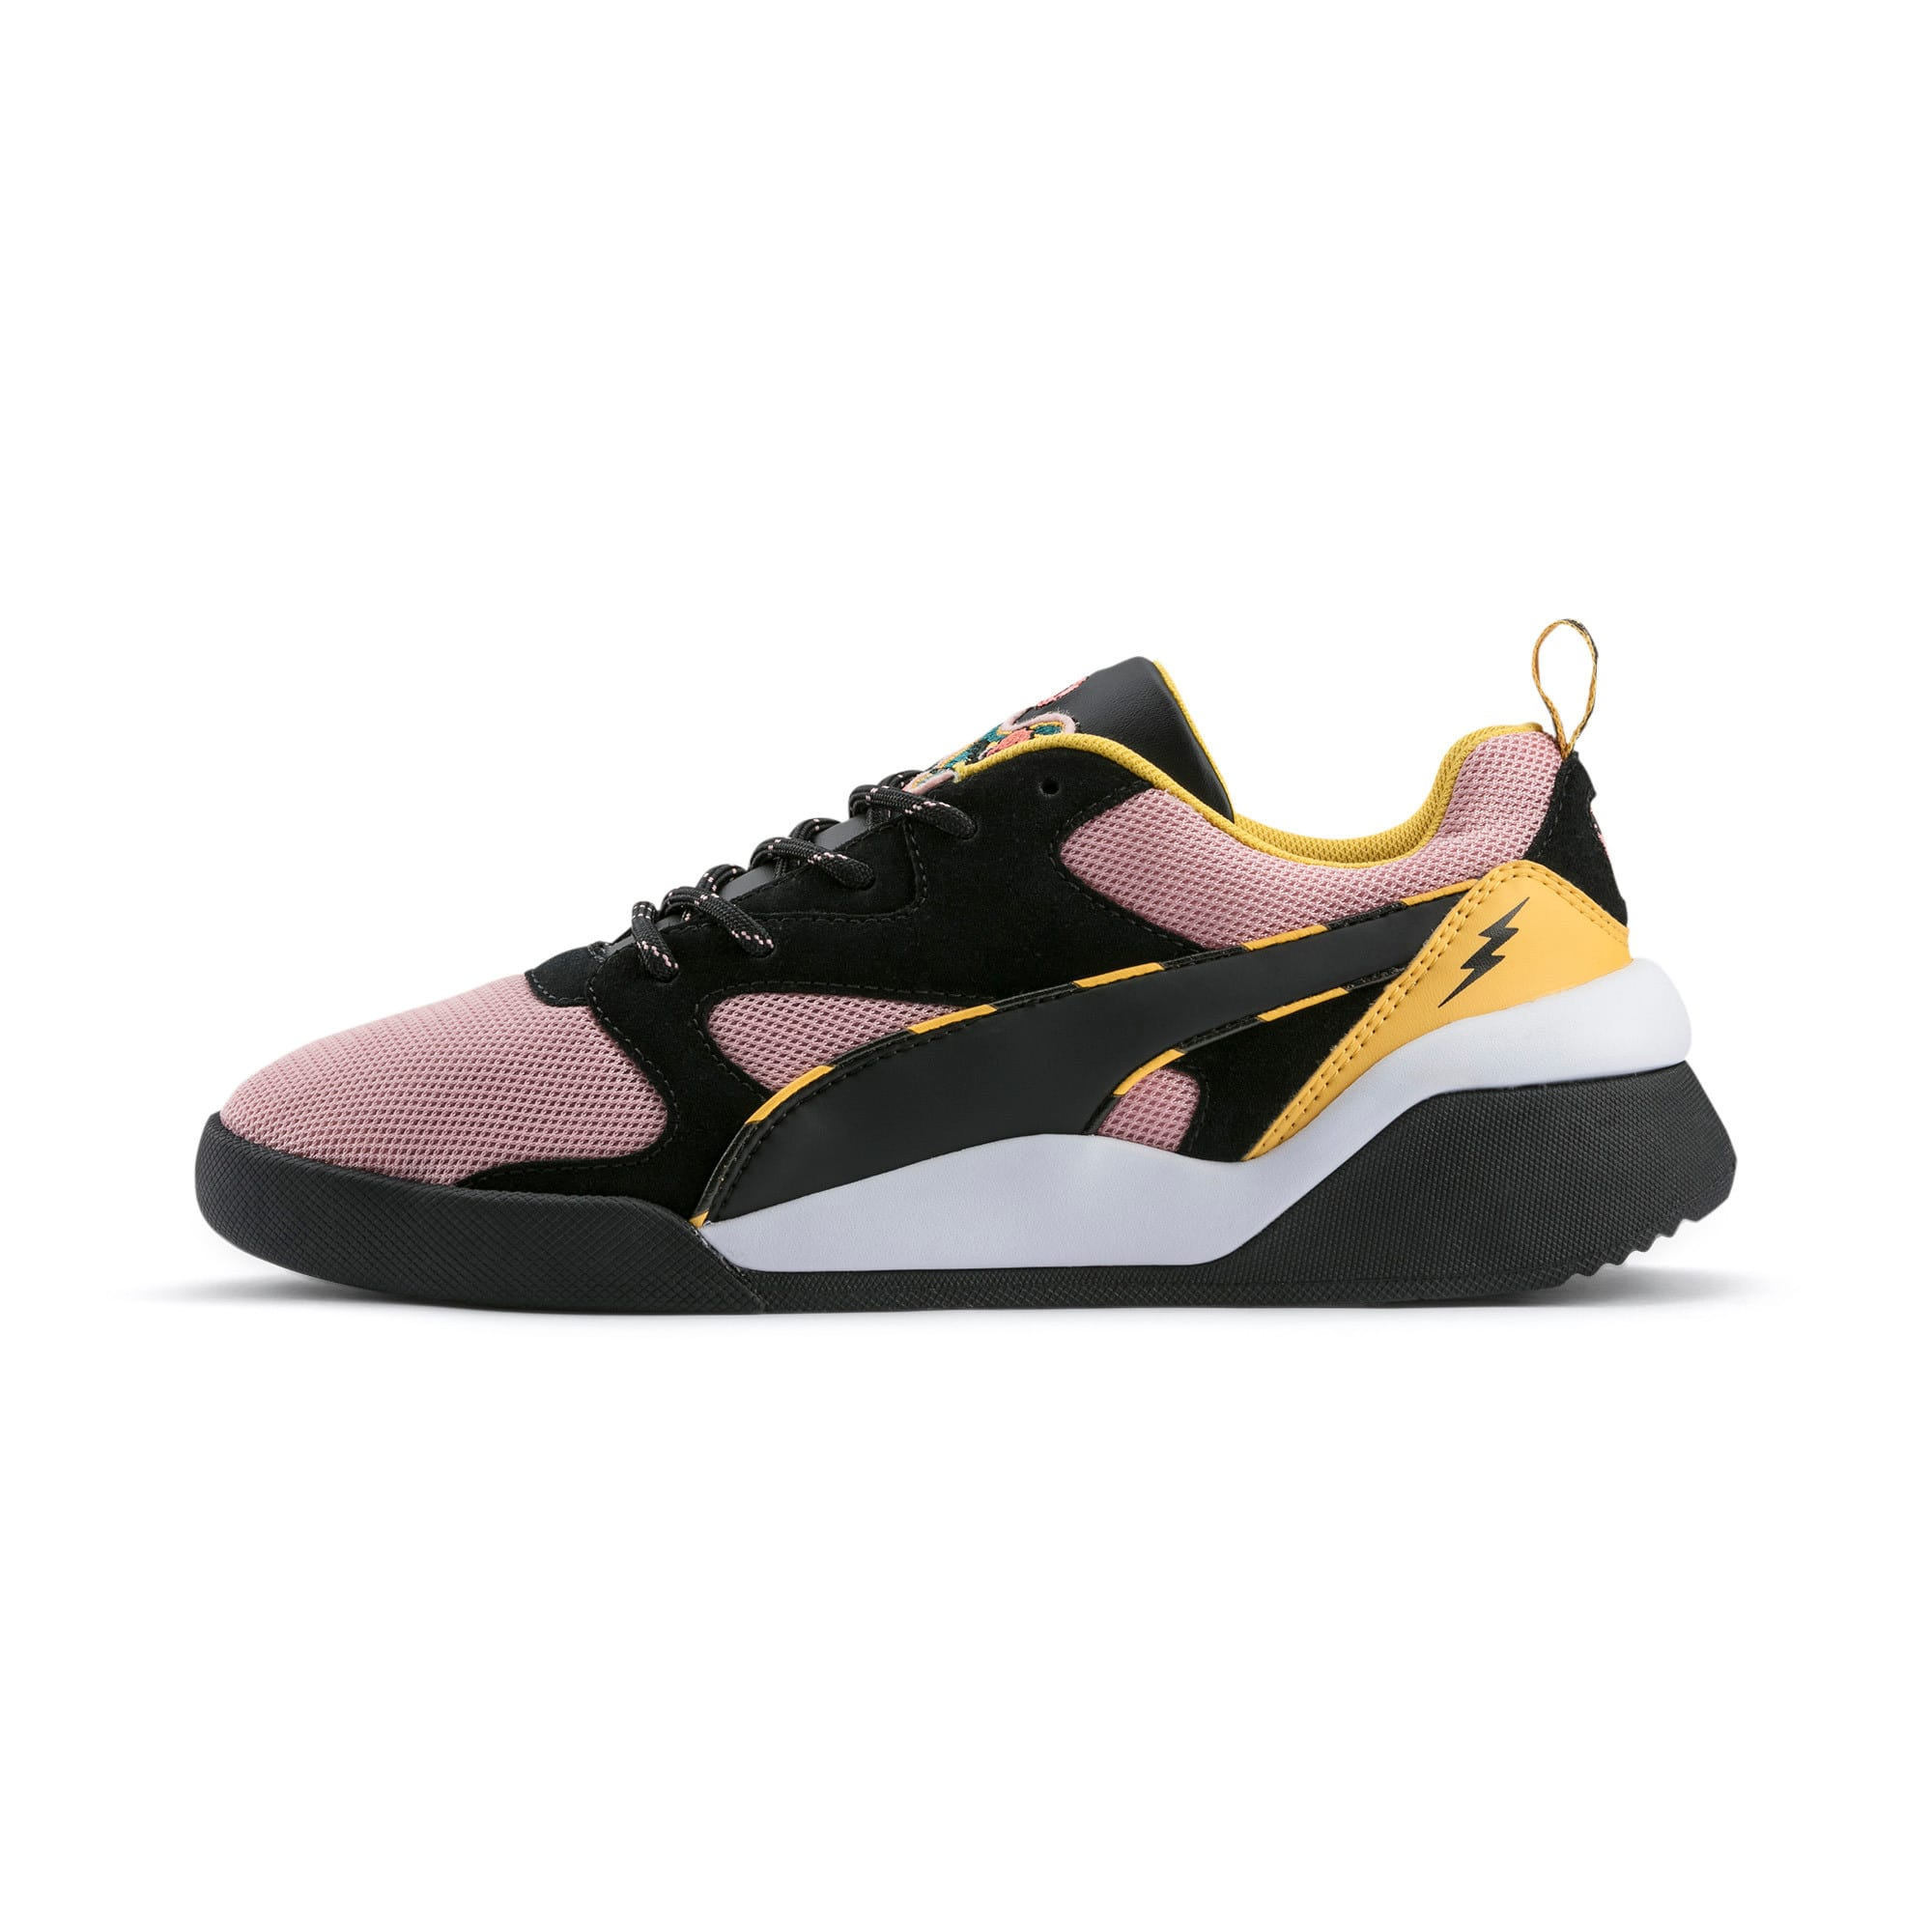 Thumbnail 1 of PUMA x SUE TSAI Aeon Women's Sneakers, Bridal Rose-Puma Black, medium